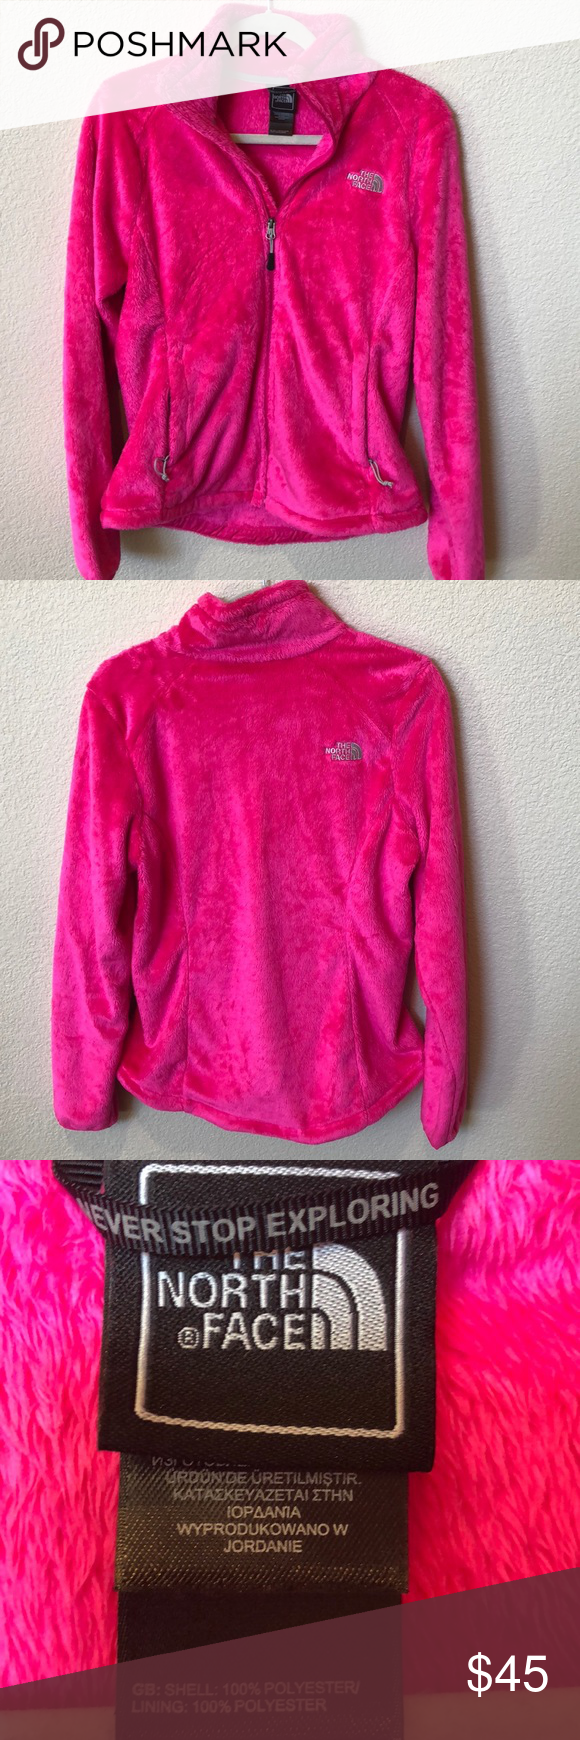 Pink Fuzzy North Face Jacket This Jacket Is So Soft As Warm Bright Pink And In Great Condition The North Face North Face Jacket The North Face Clothes Design [ 1740 x 580 Pixel ]